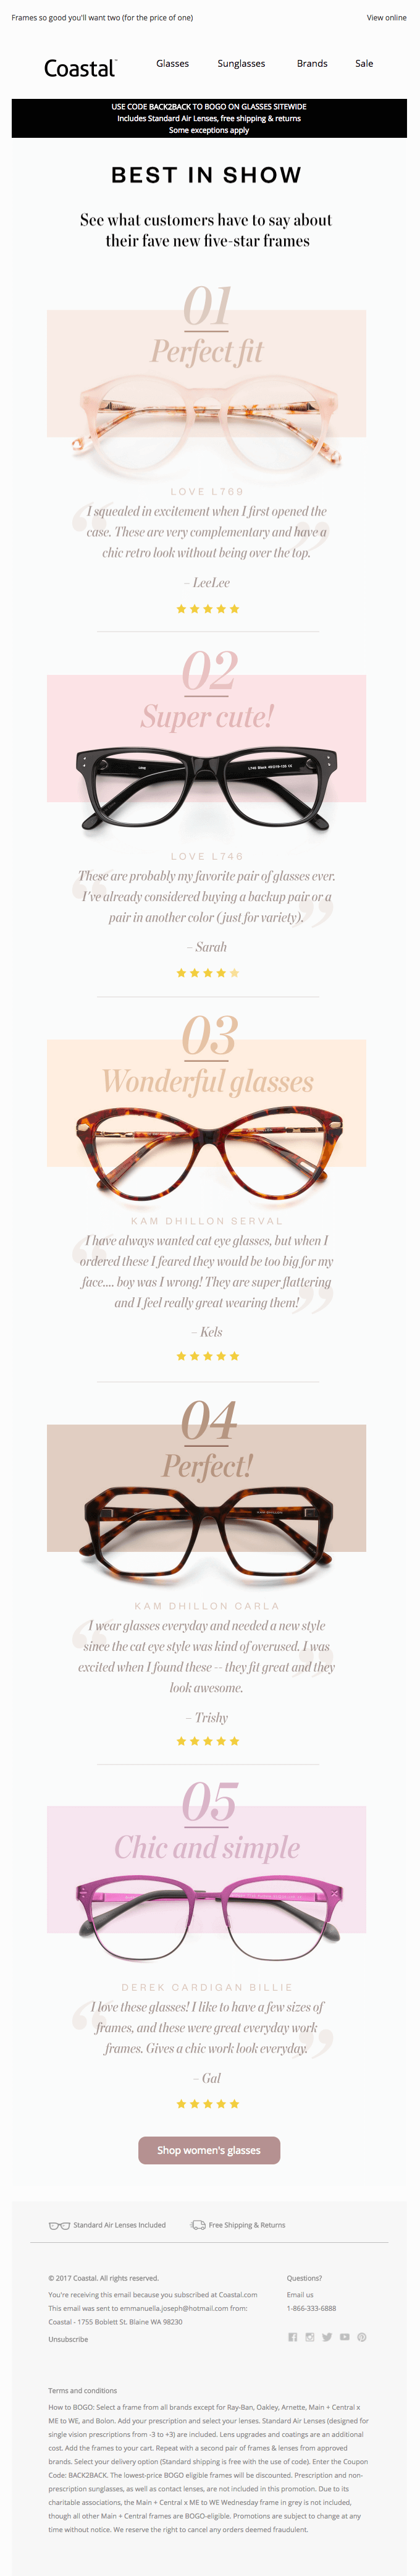 fonts and styling in emails